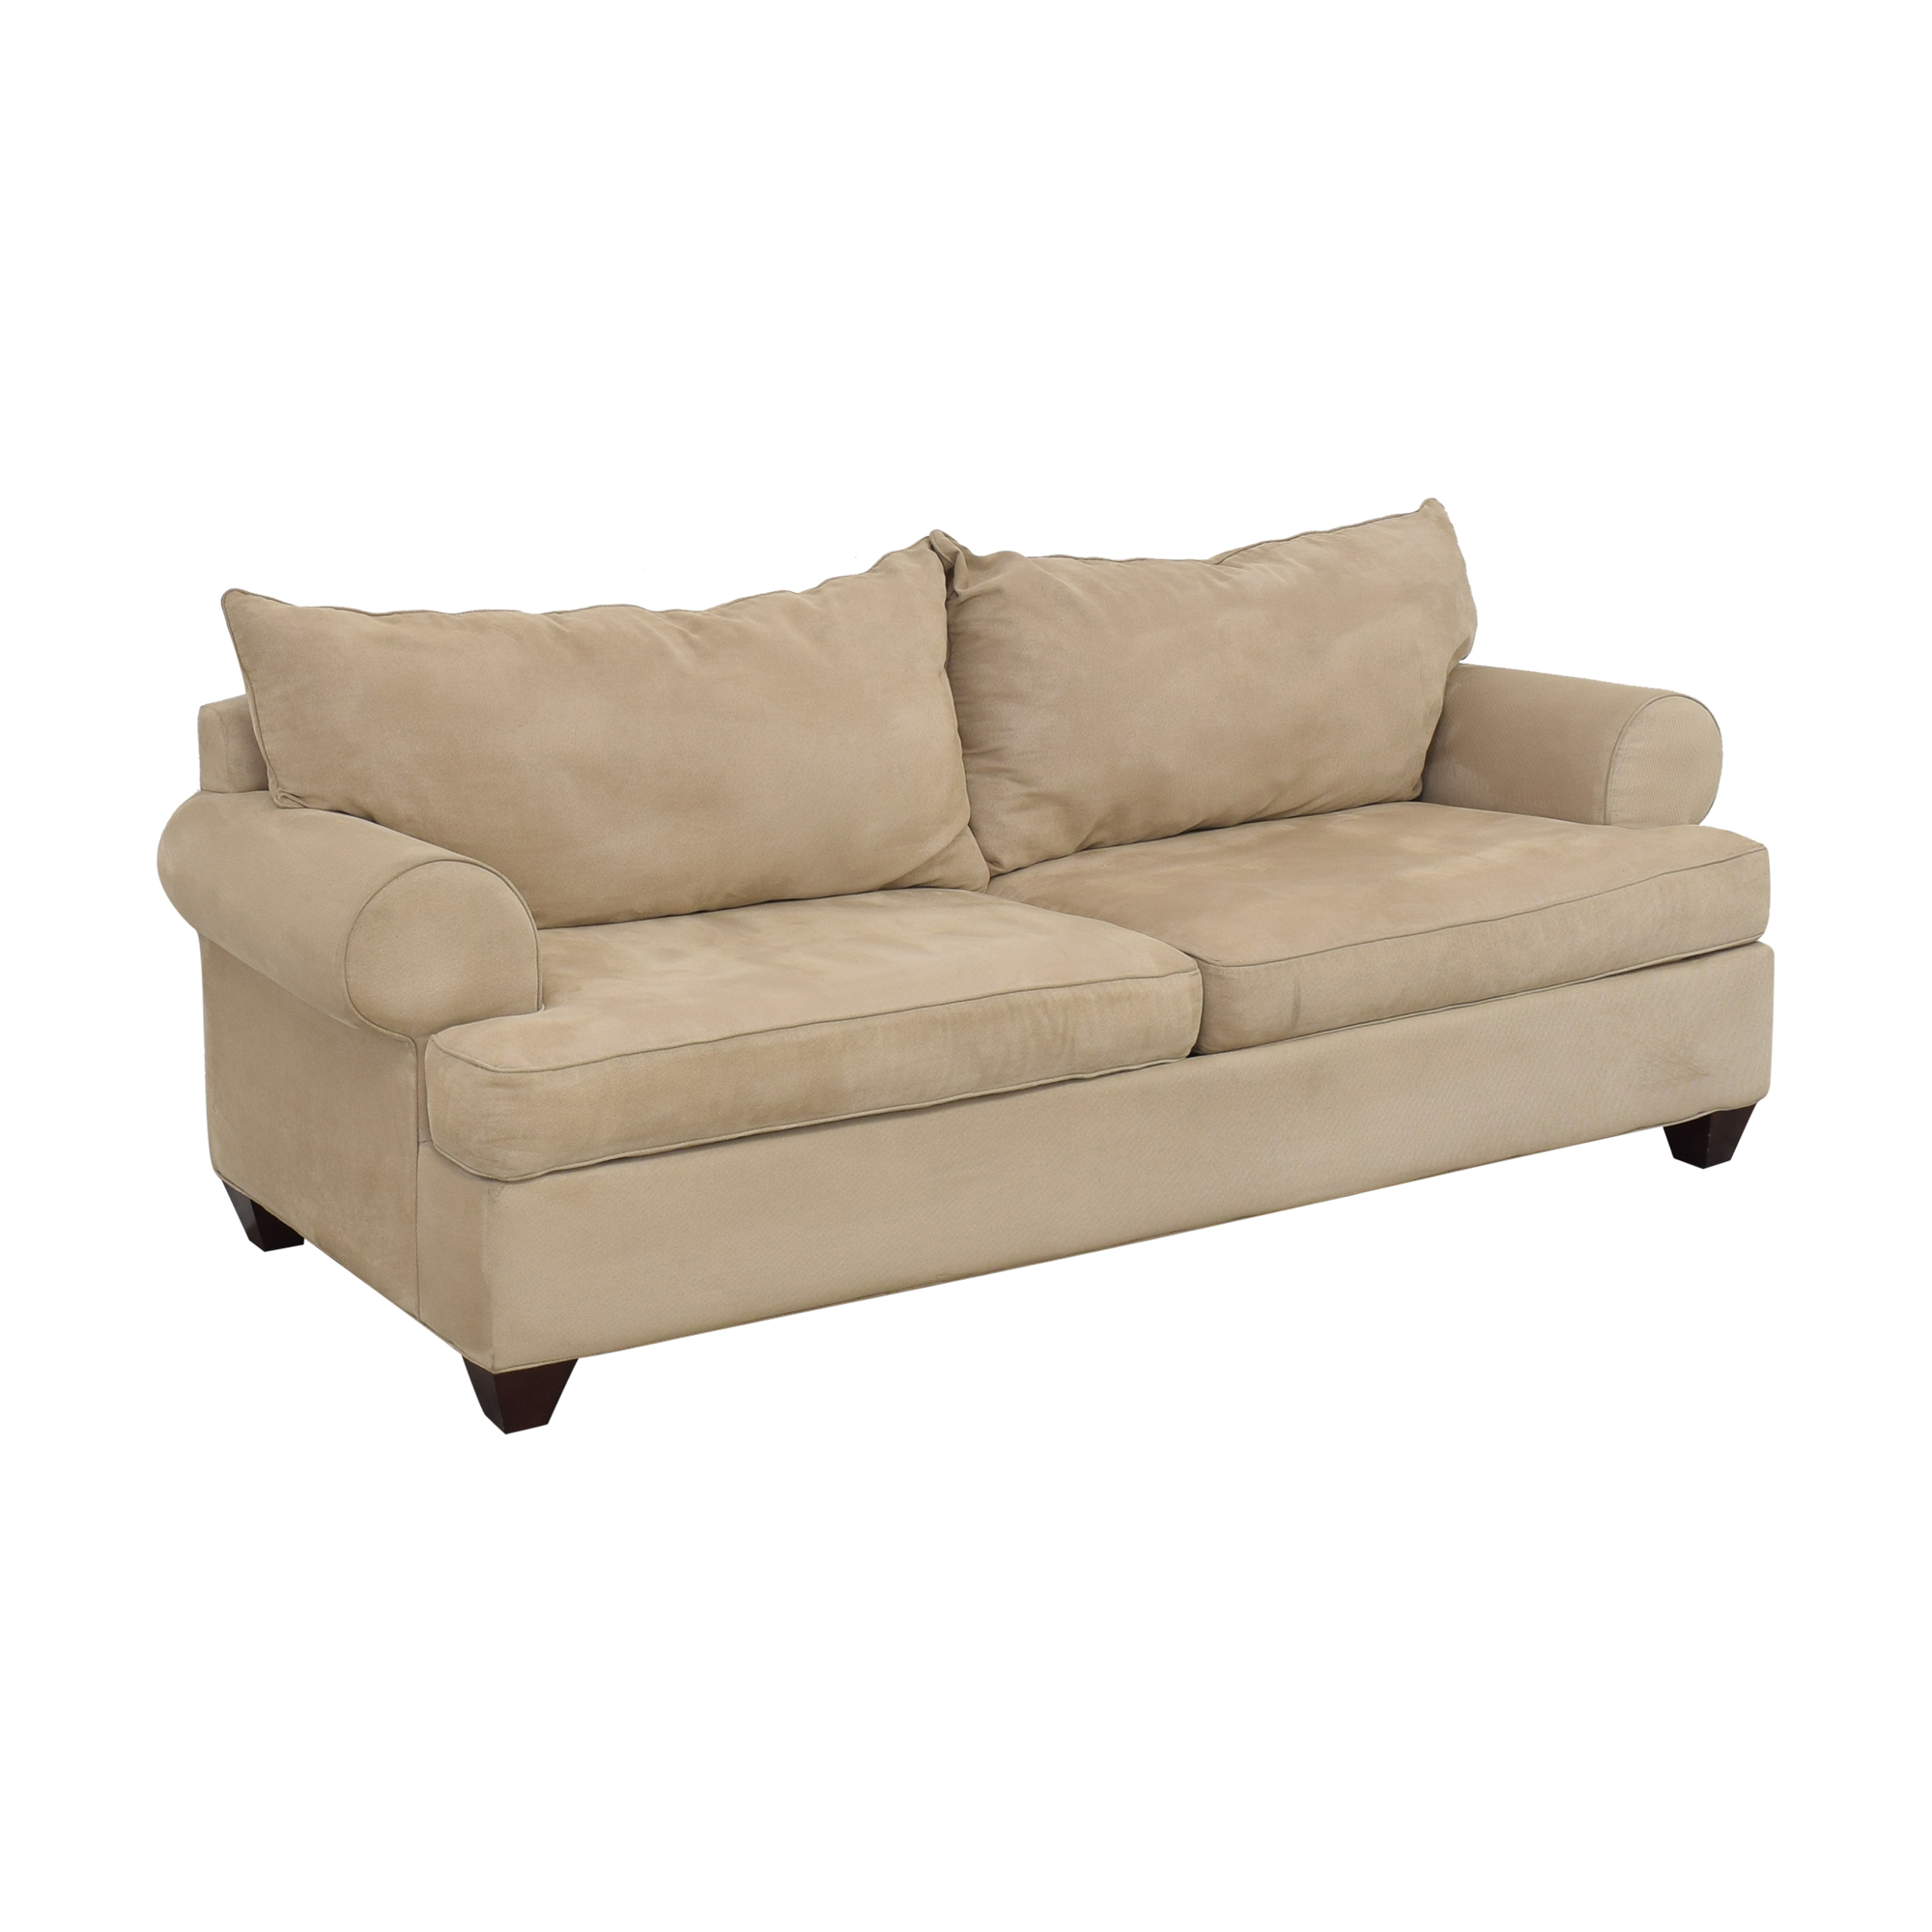 Raymour & Flanigan Raymour & Flanigan Two Cushion Sofa Classic Sofas